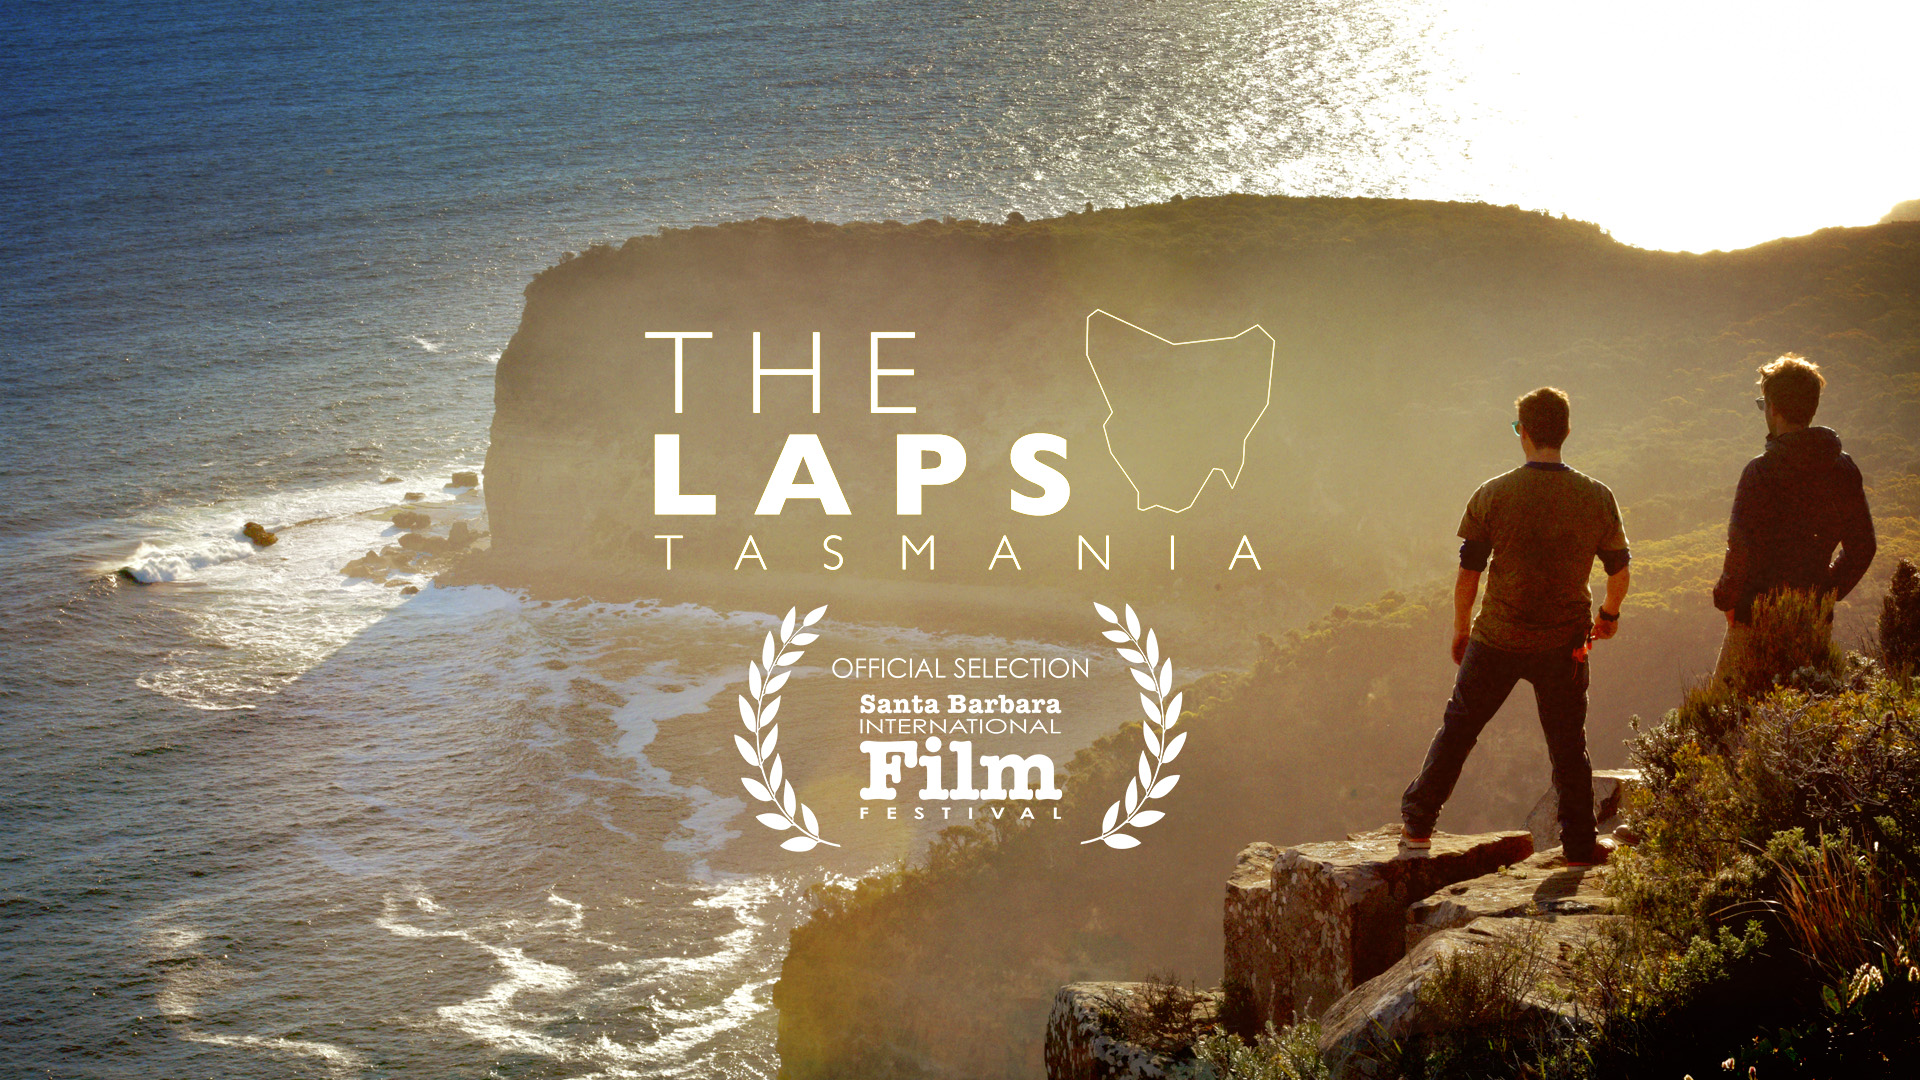 KCSB Radio Interview - As part of the Santa Barbara International Film Festival 2019 Coverage, KCSB reporter Harry Lawton sits down with director Angie Davis to talk about her documentary The Laps: Tasmania, her second movie to premiere at the festival.